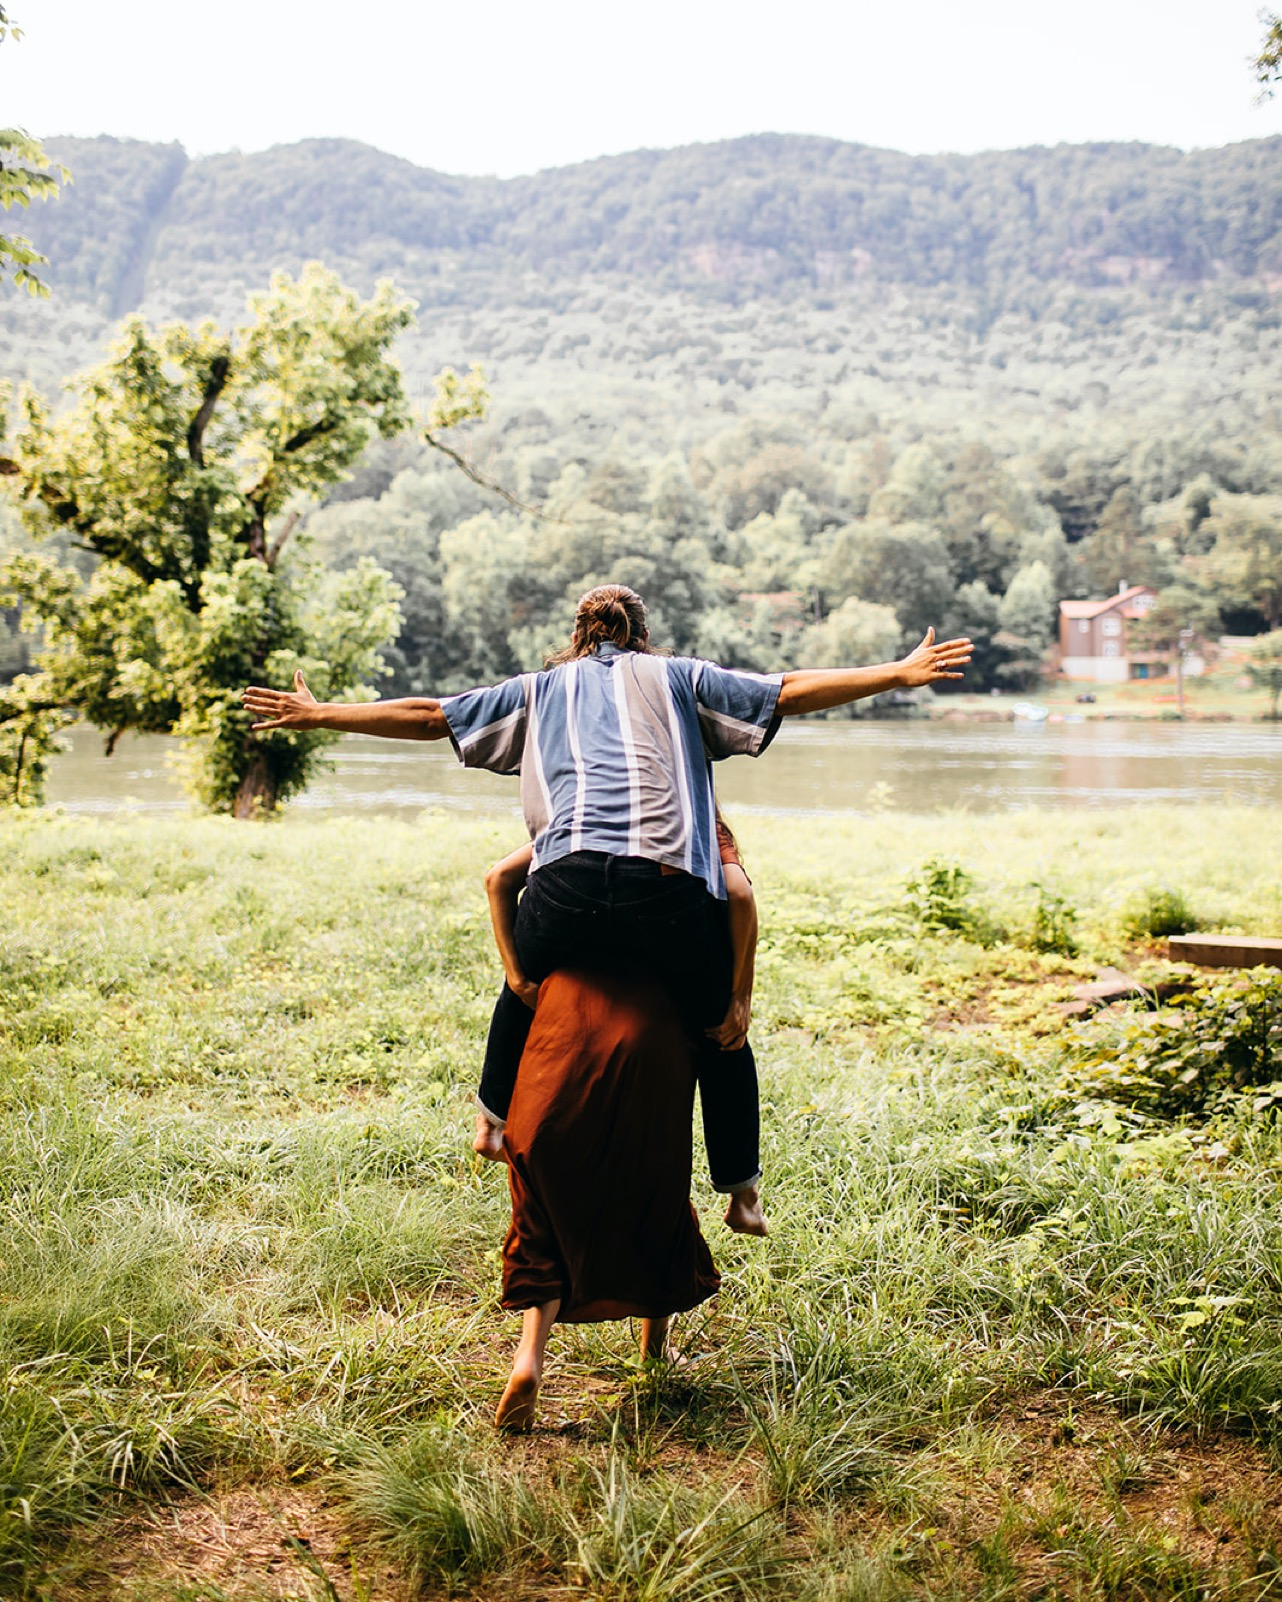 A woman gives her fiance a piggy back ride on the banks of the Tennessee River.